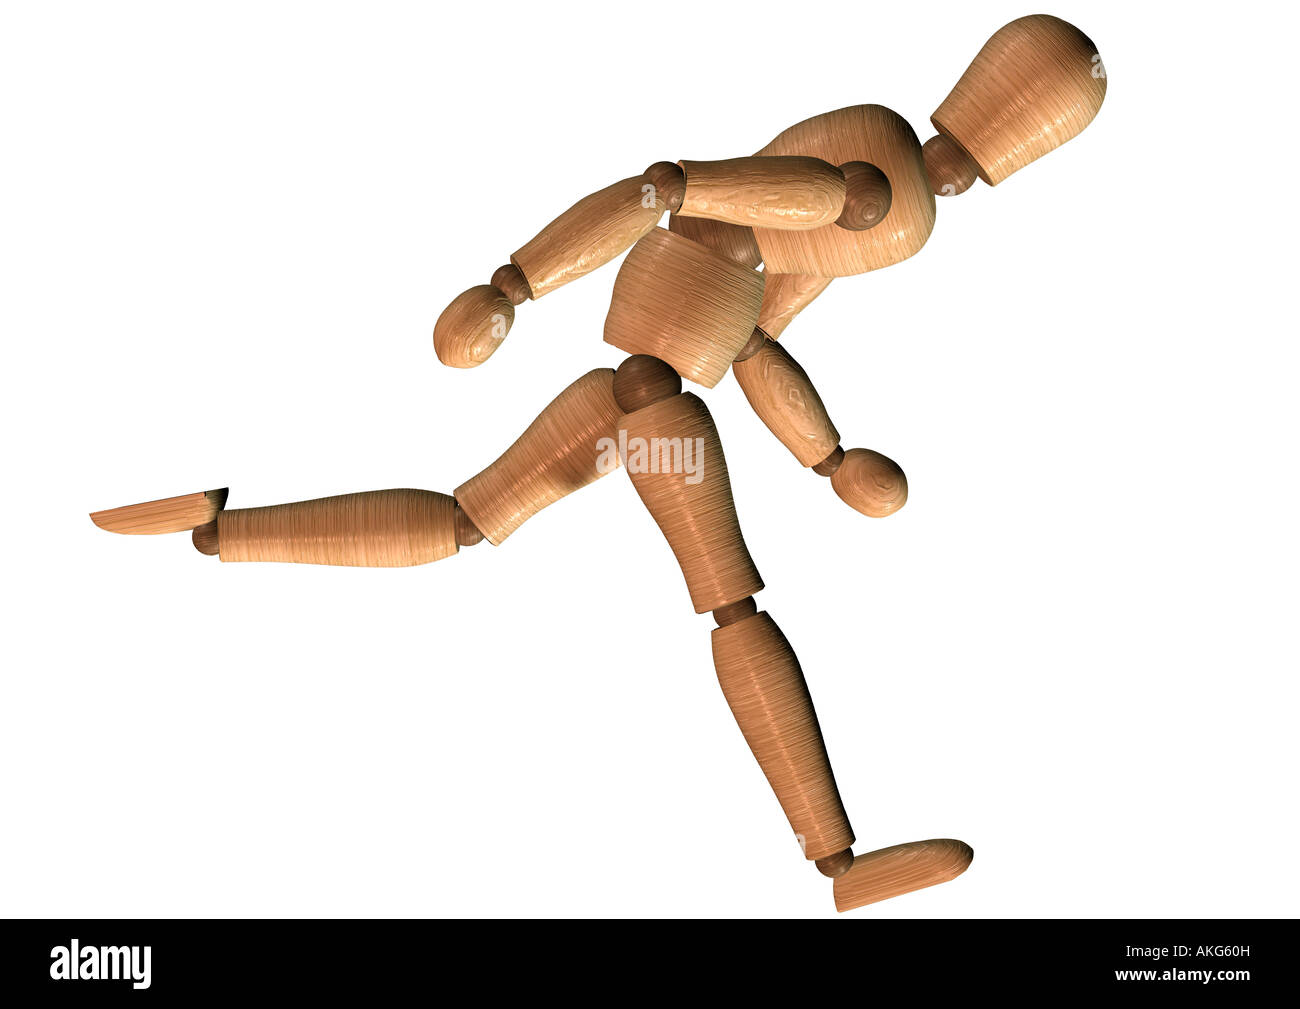 jointed doll running Gliederpuppe rennt - Stock Image